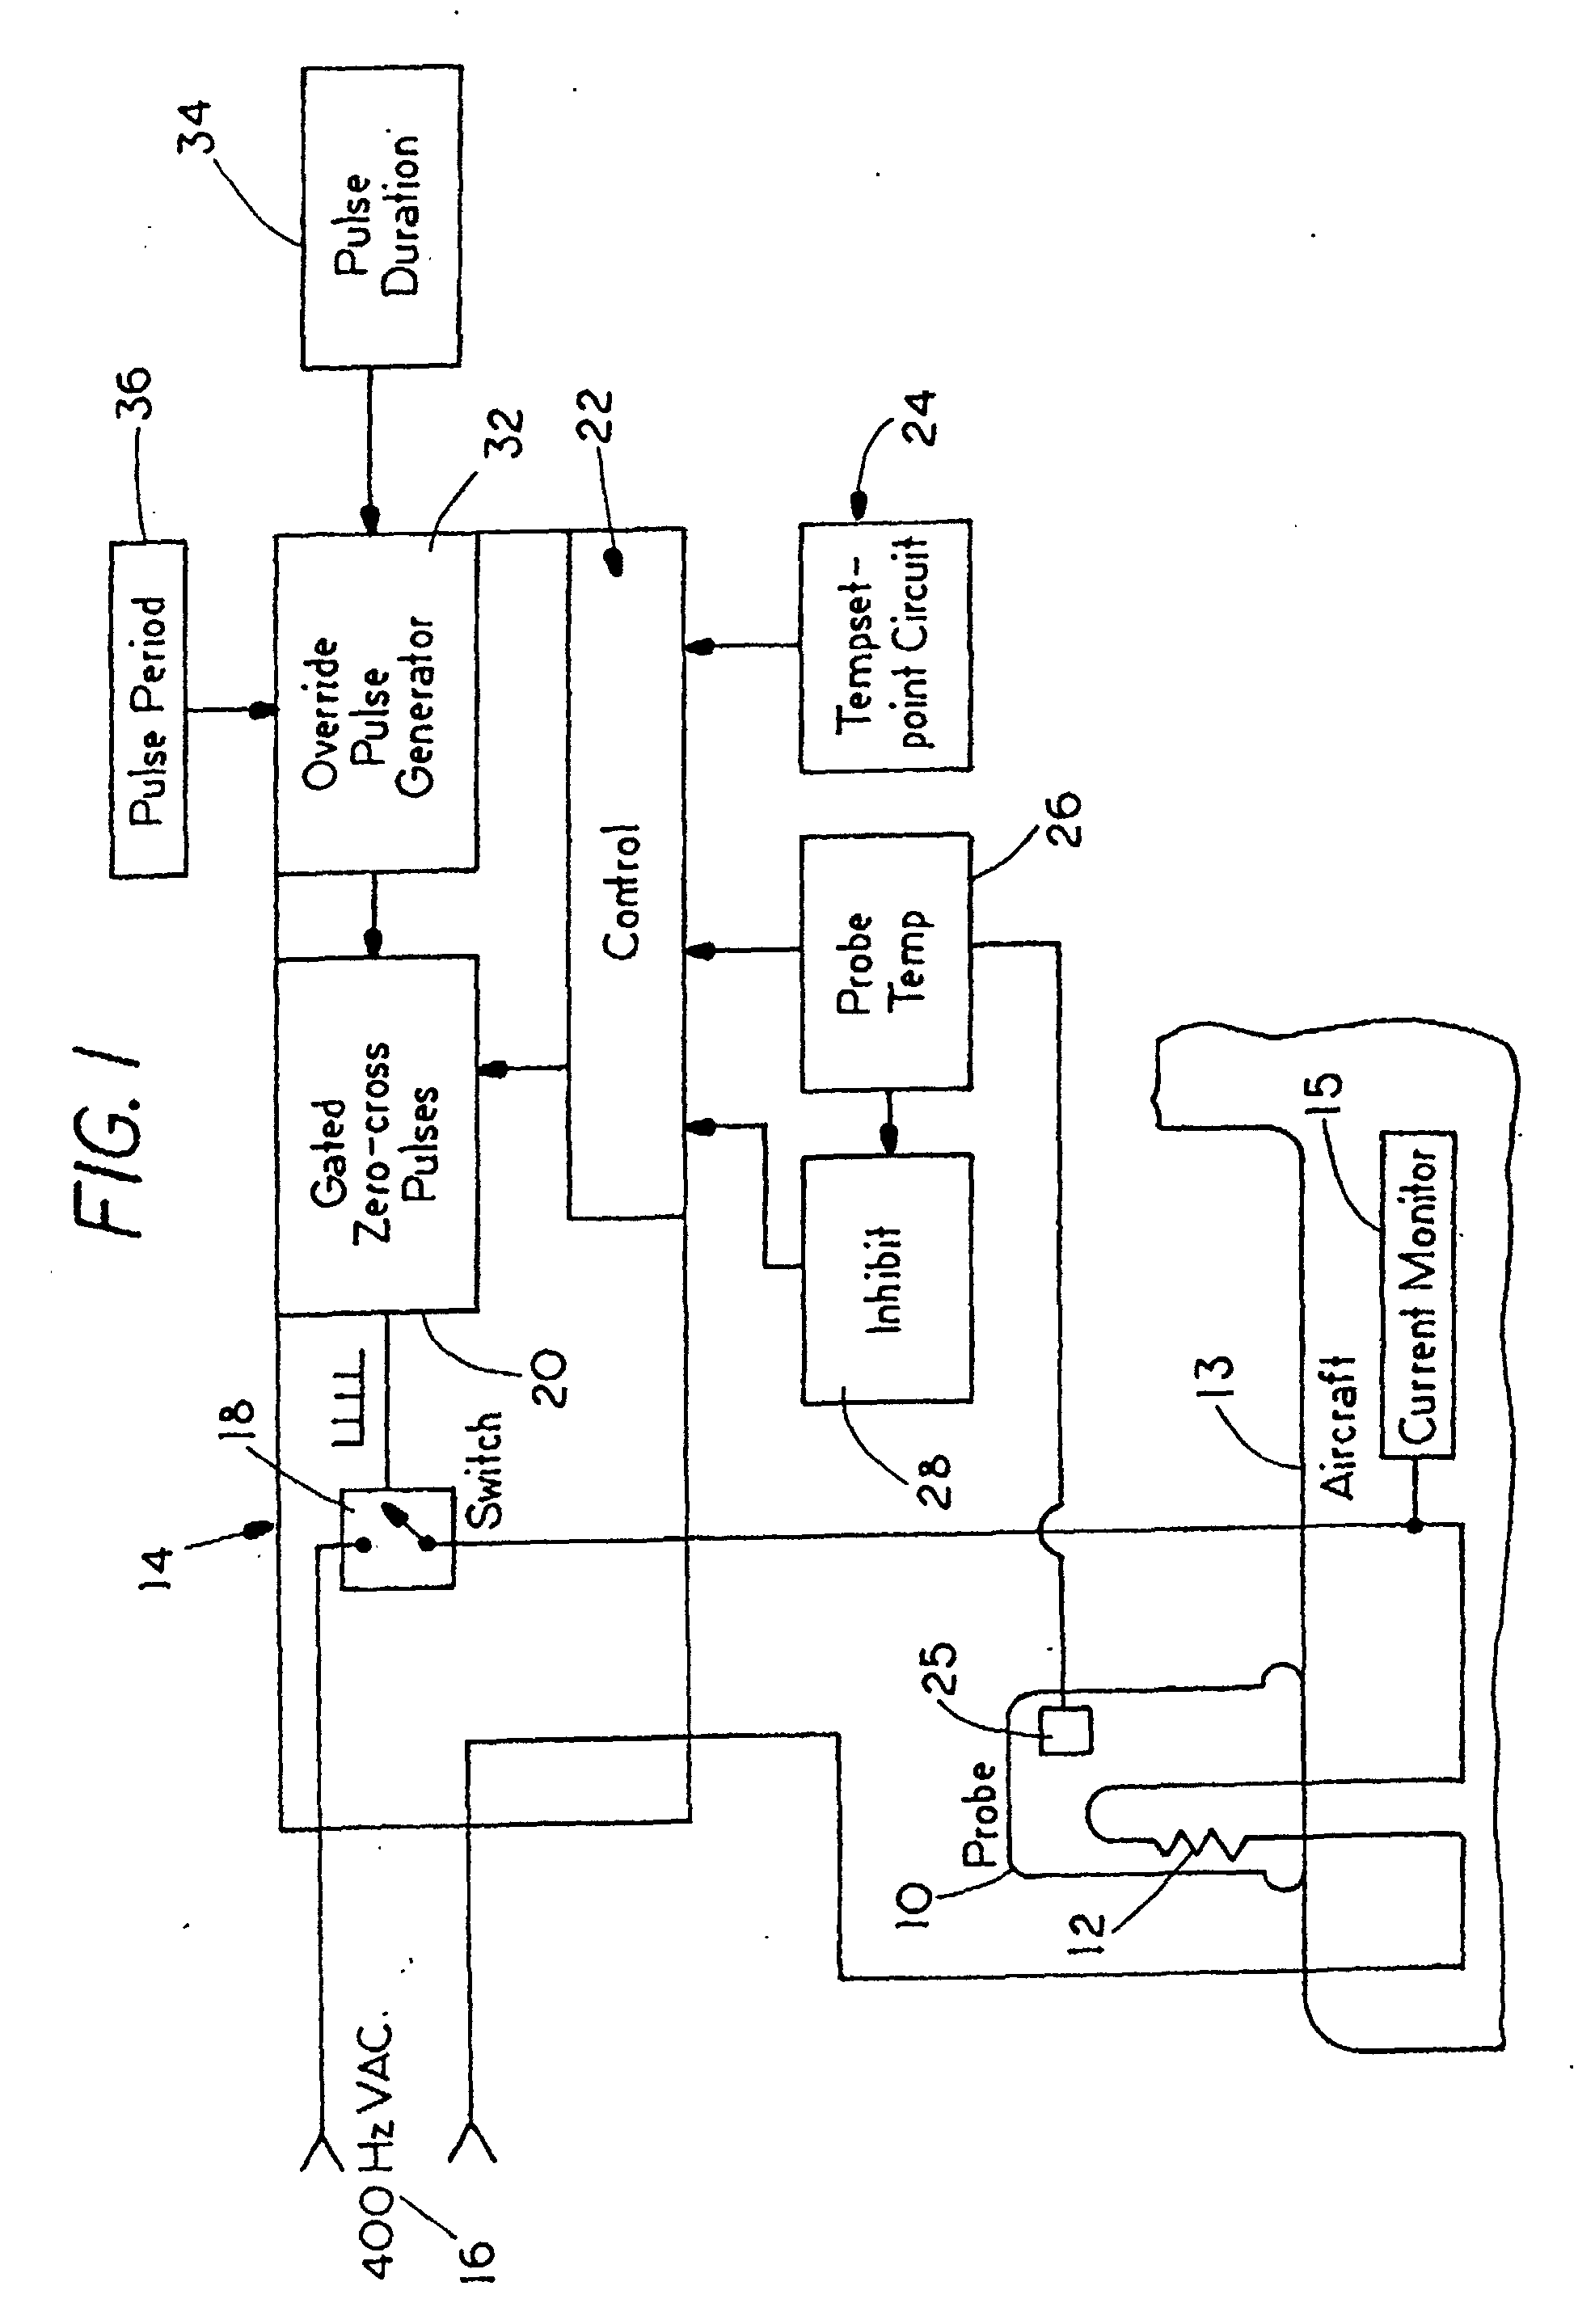 patent ep1204012b1 - active heater control circuit and method used for aerospace probes